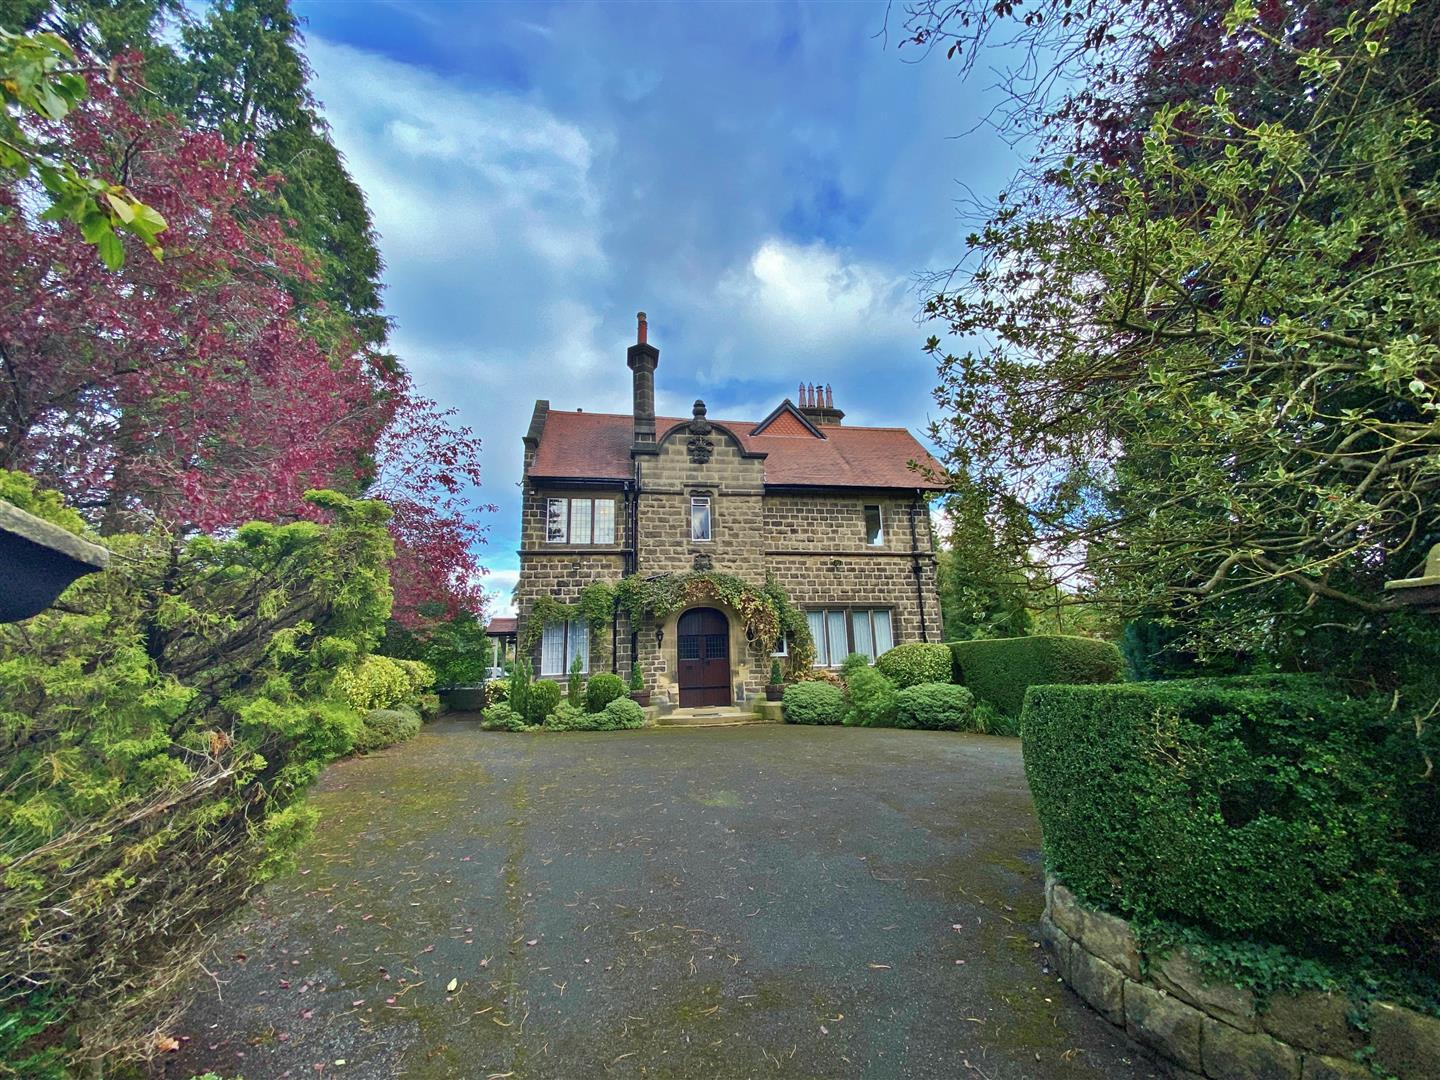 Gill Bank Road, Ilkley, LS29 0AU